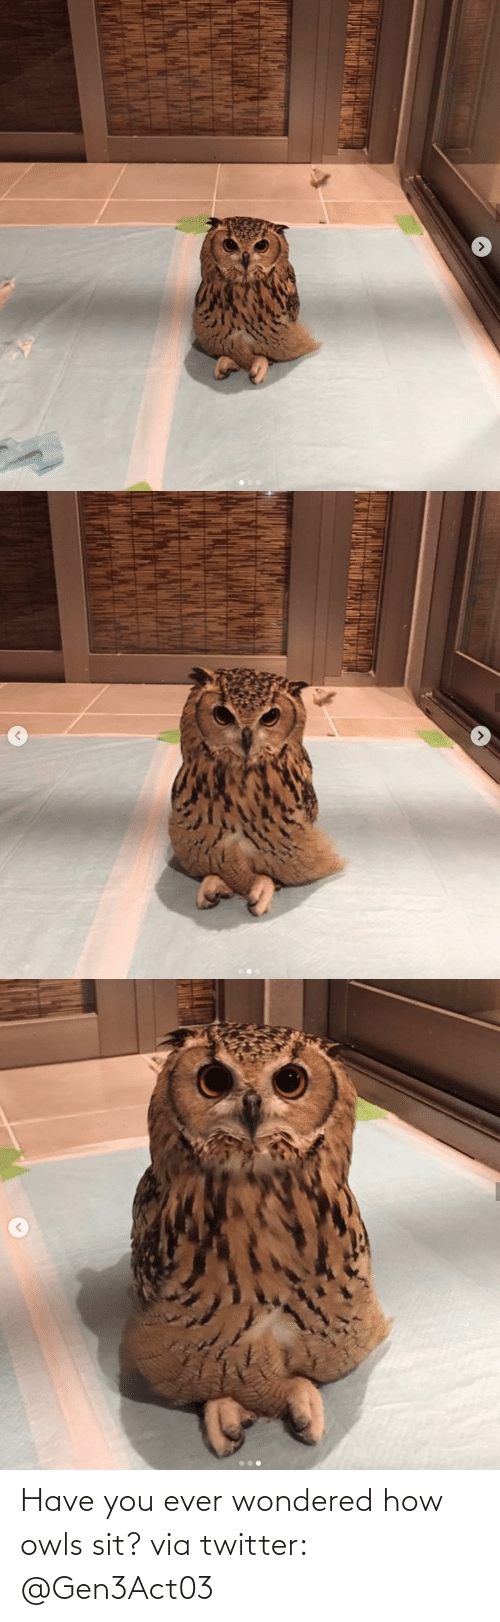 owls: Have you ever wondered how owls sit?via twitter: @Gen3Act03